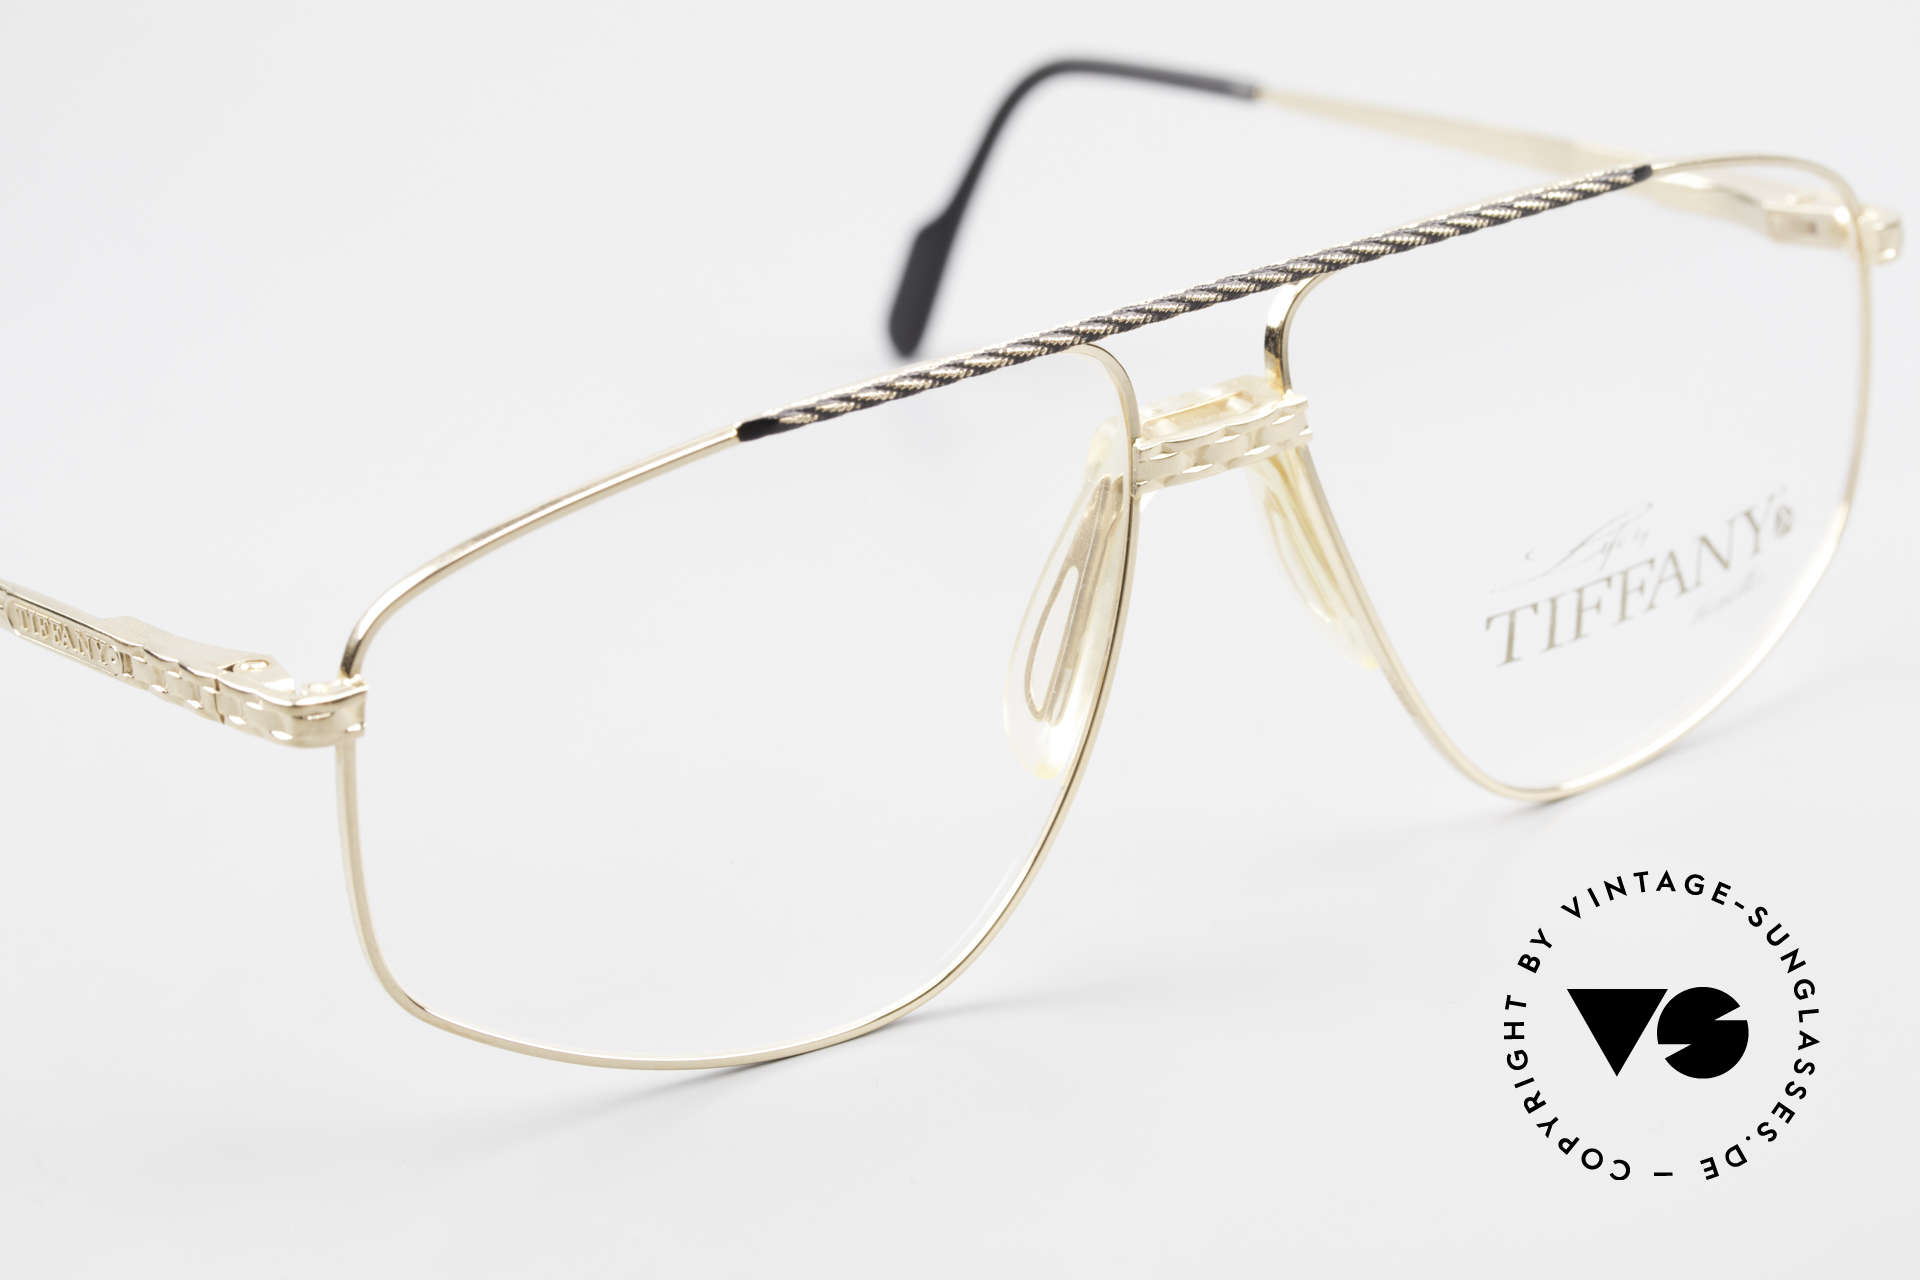 Tiffany T89 23kt Gold Plated Aviator Frame, new old stock (like all our GOLD-PLATED vintage specs), Made for Men